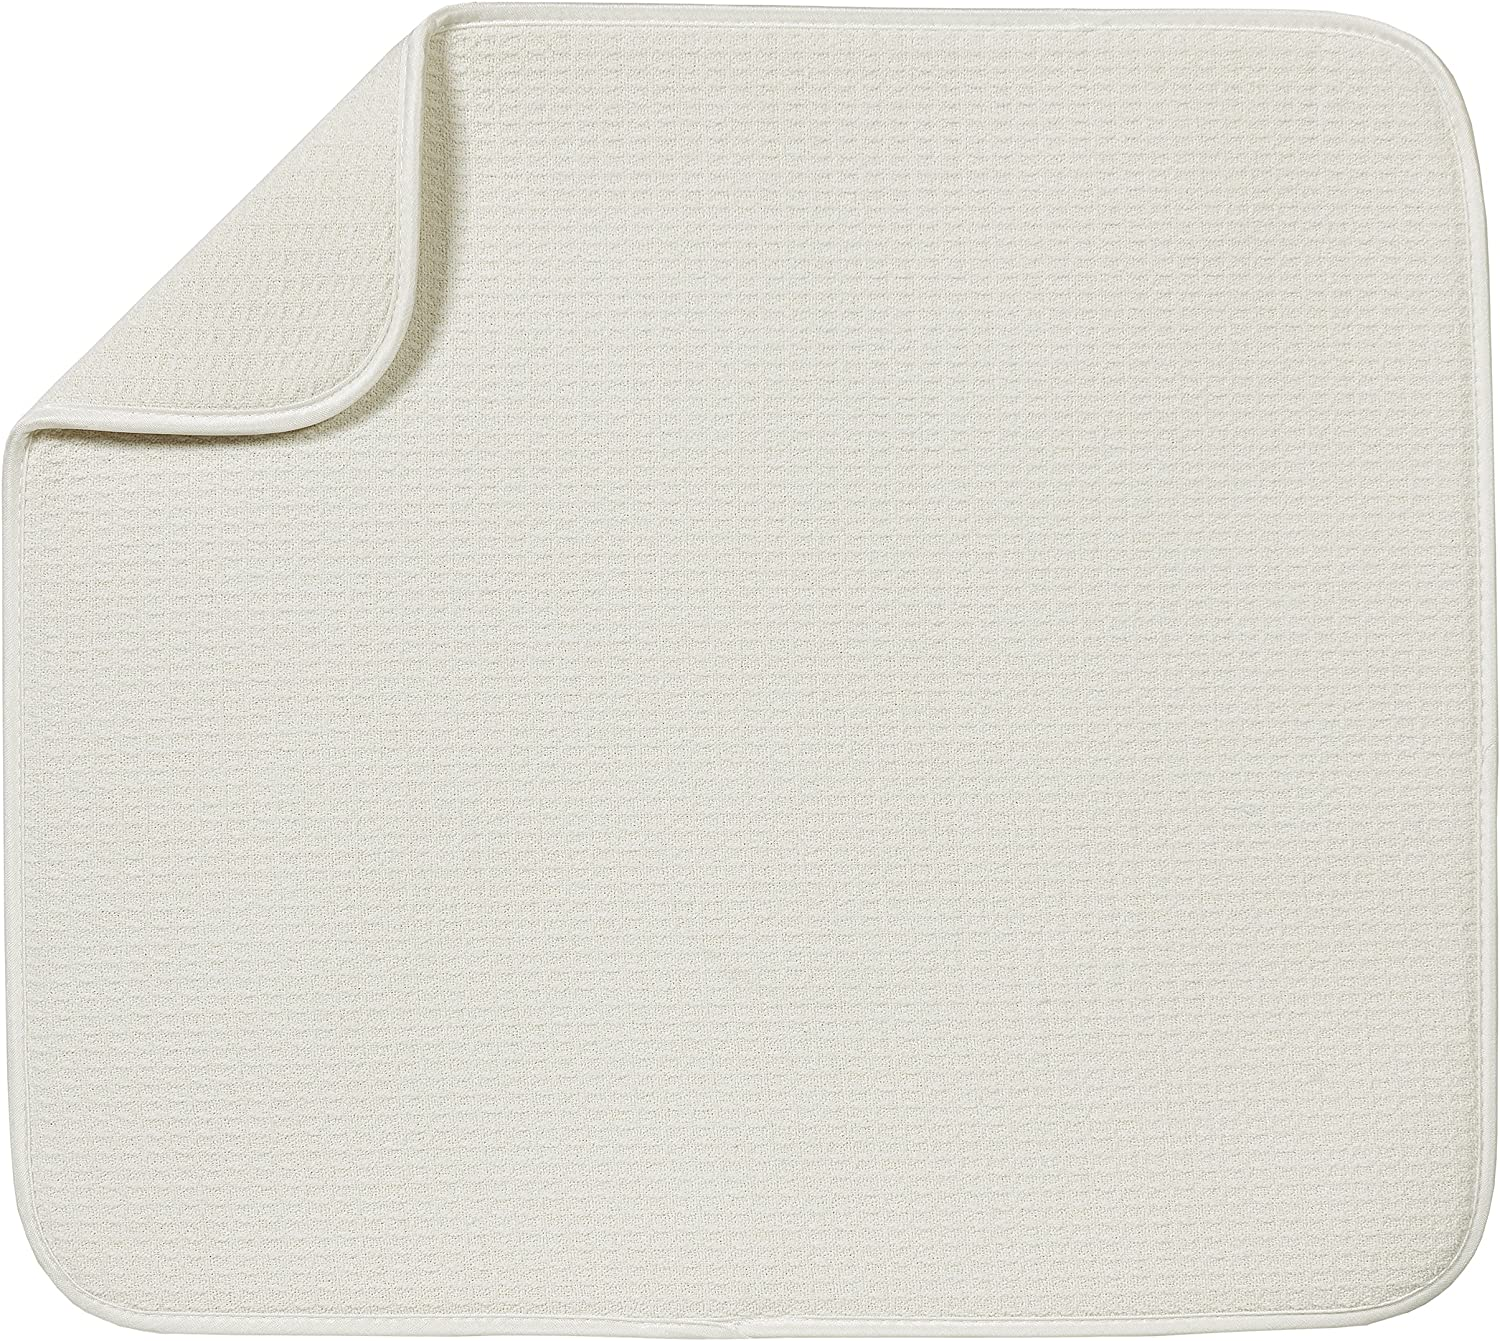 S&T INC. Absorbent, Reversible Microfiber Dish Drying Mat for Kitchen, 16 Inch x 18 Inch, Cream